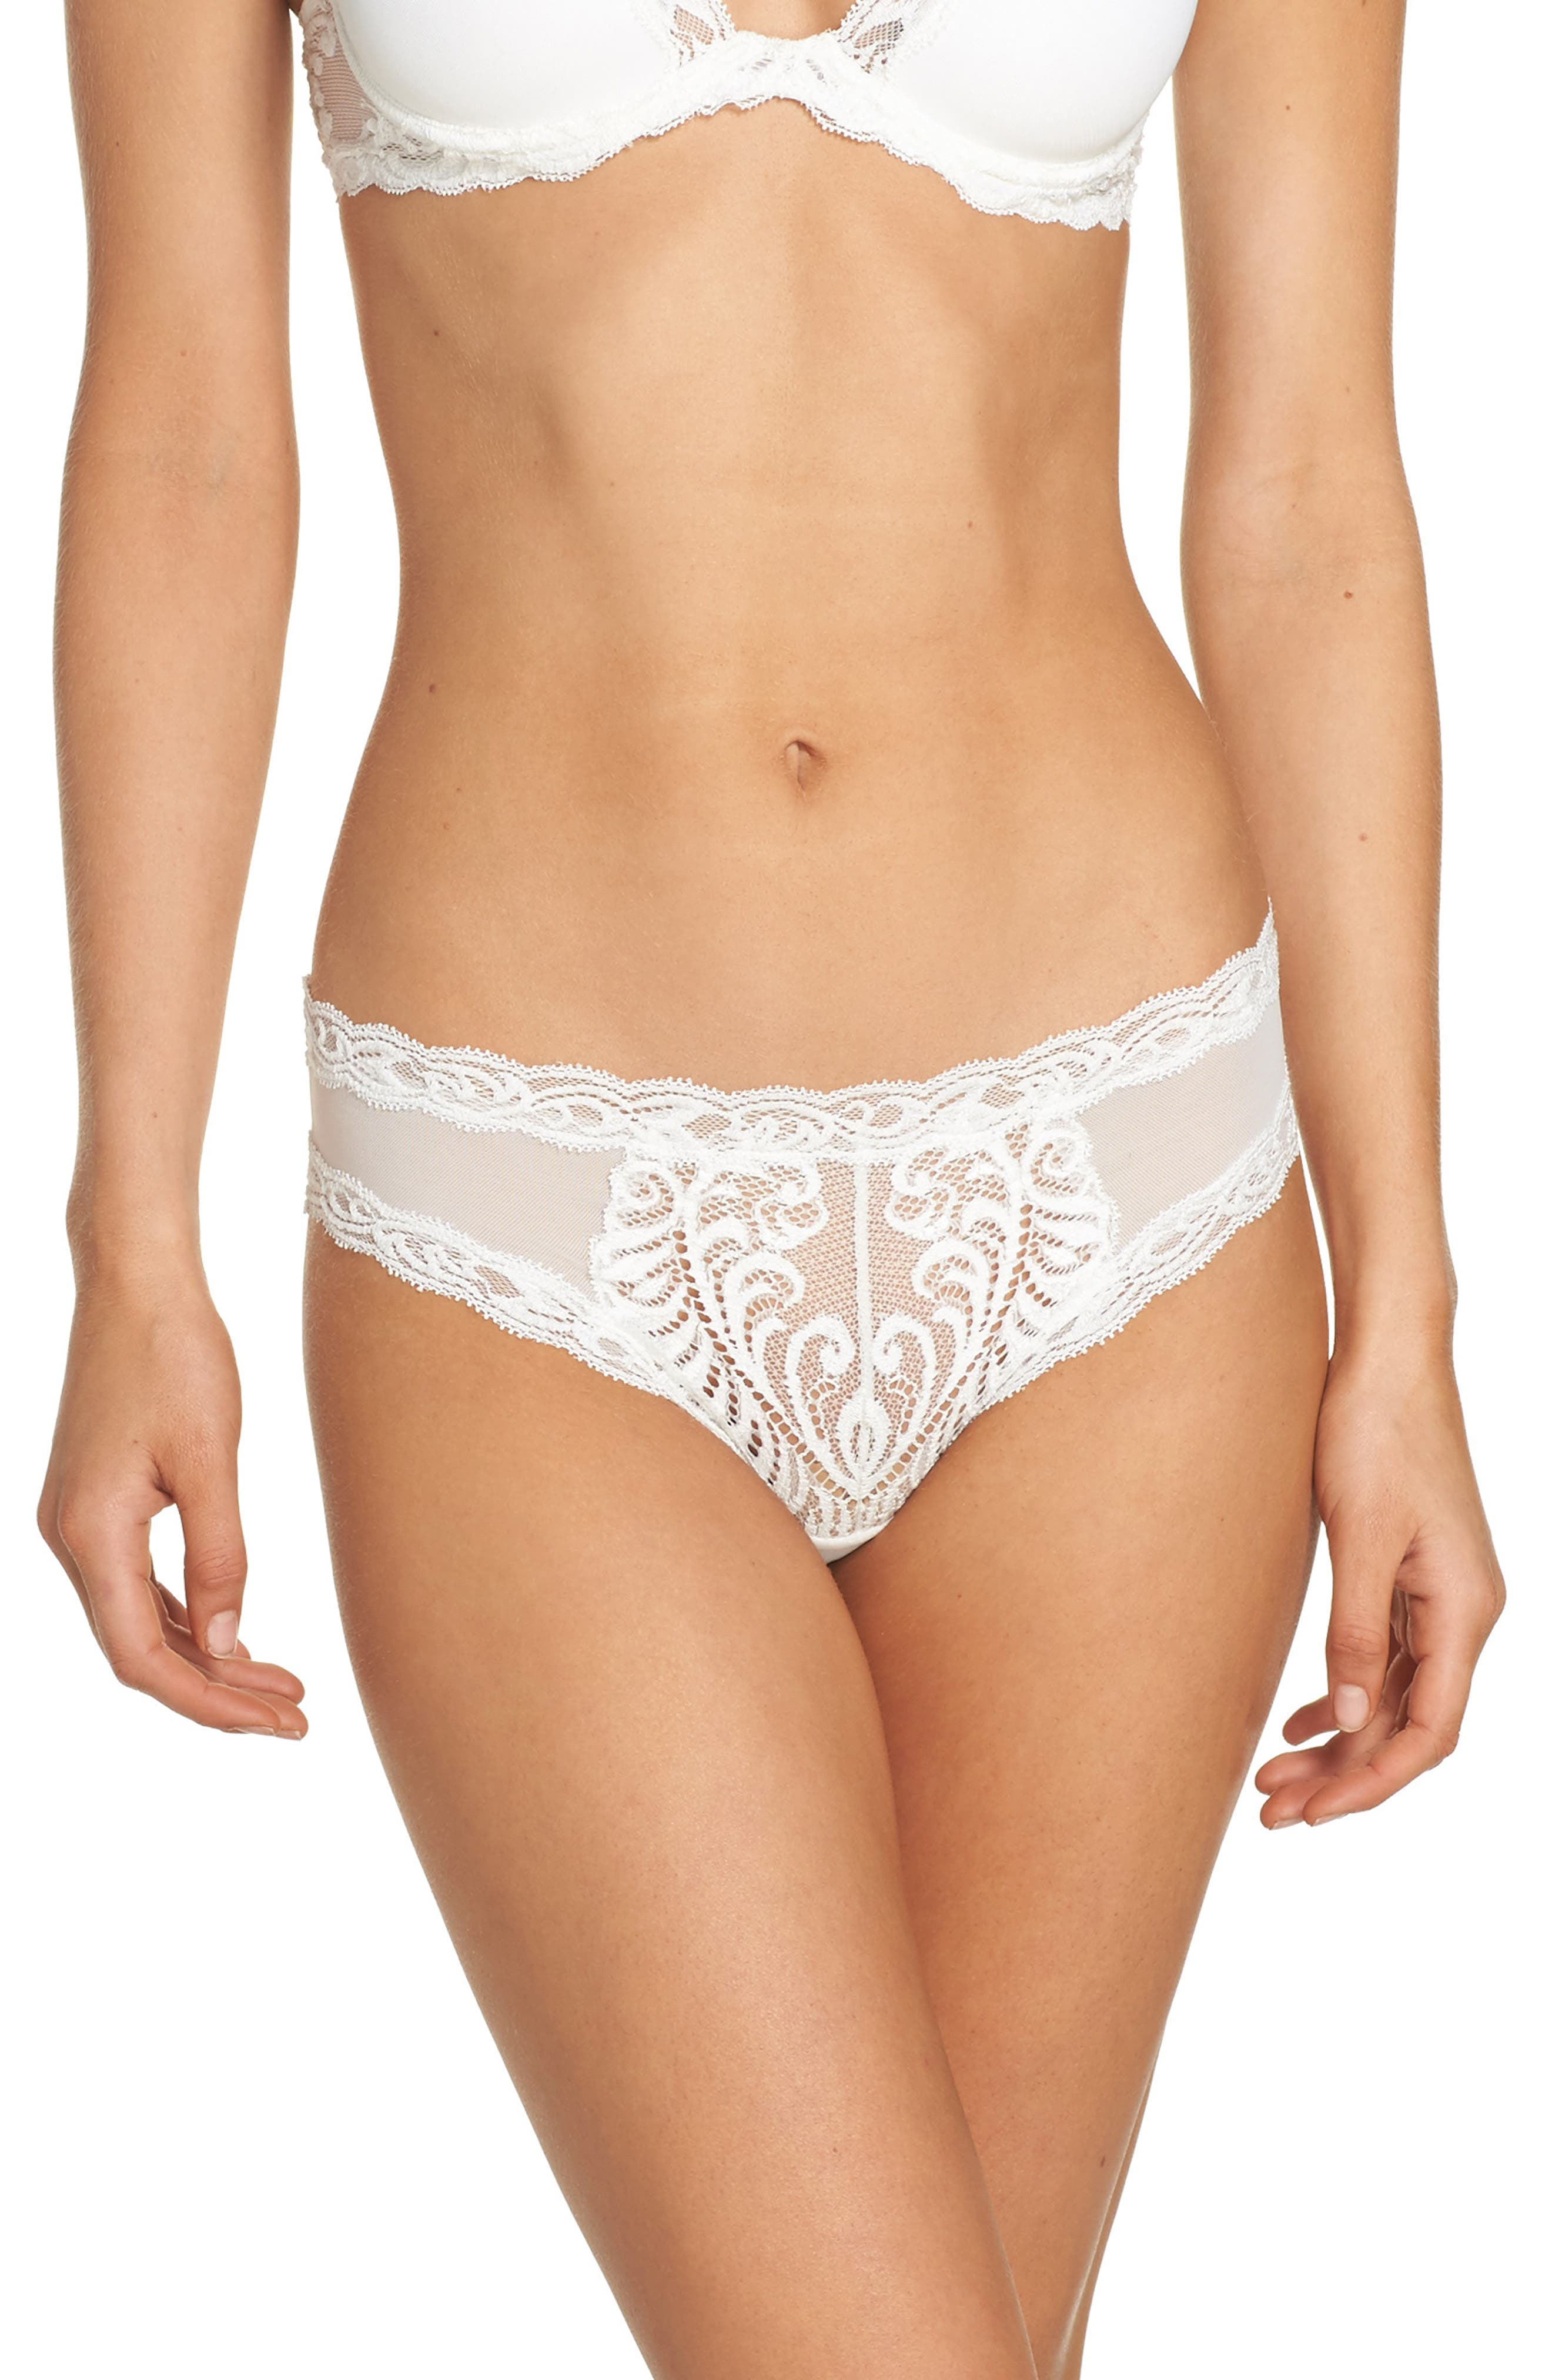 Feathers Hipster Briefs,                             Main thumbnail 1, color,                             Warm White